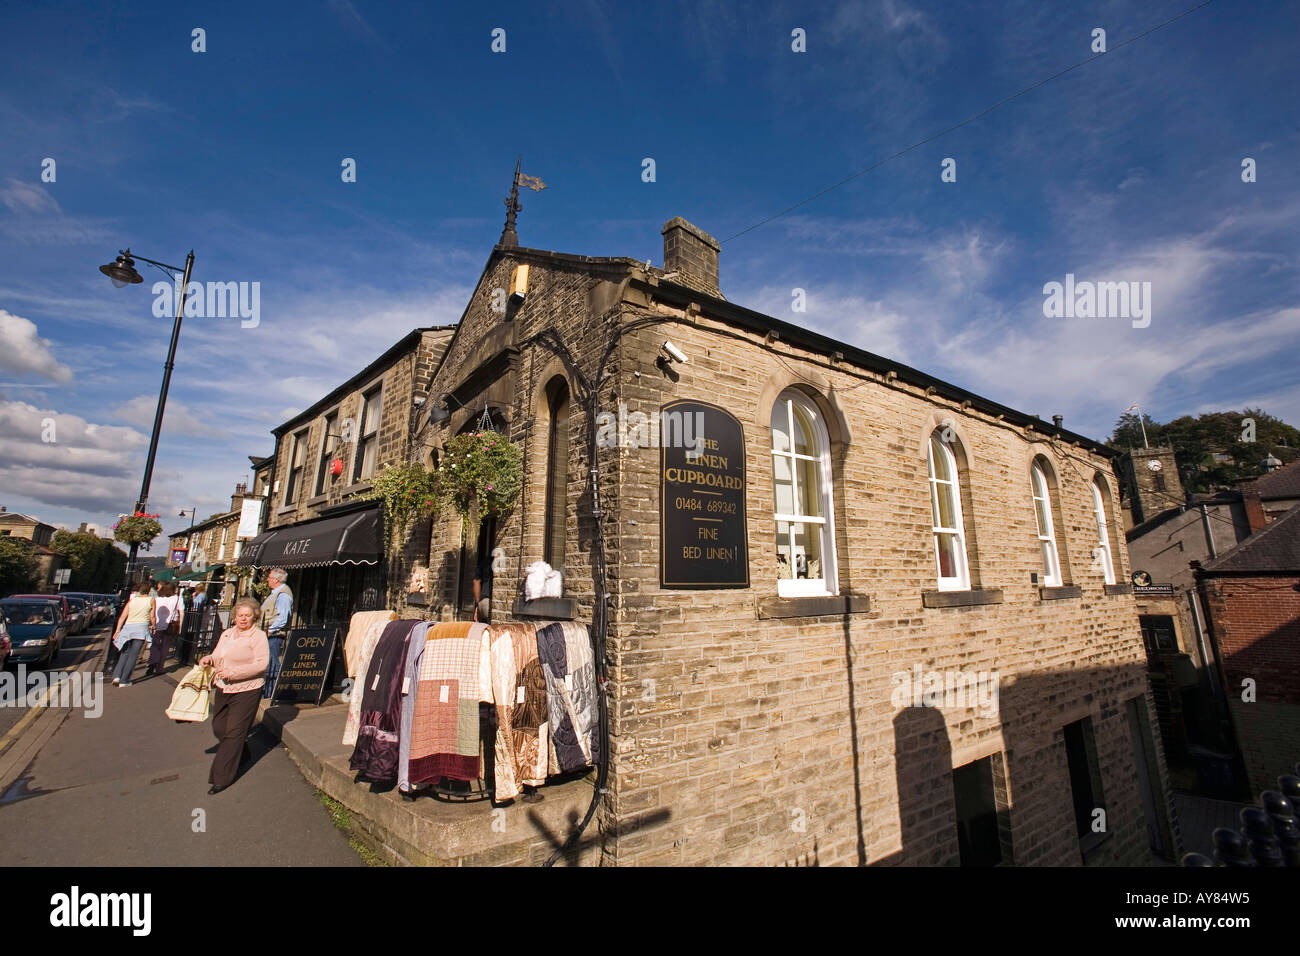 UK Yorkshire Holmfirth town centre Huddersfield Road former chapel converted to bedlinen shop - Stock Image